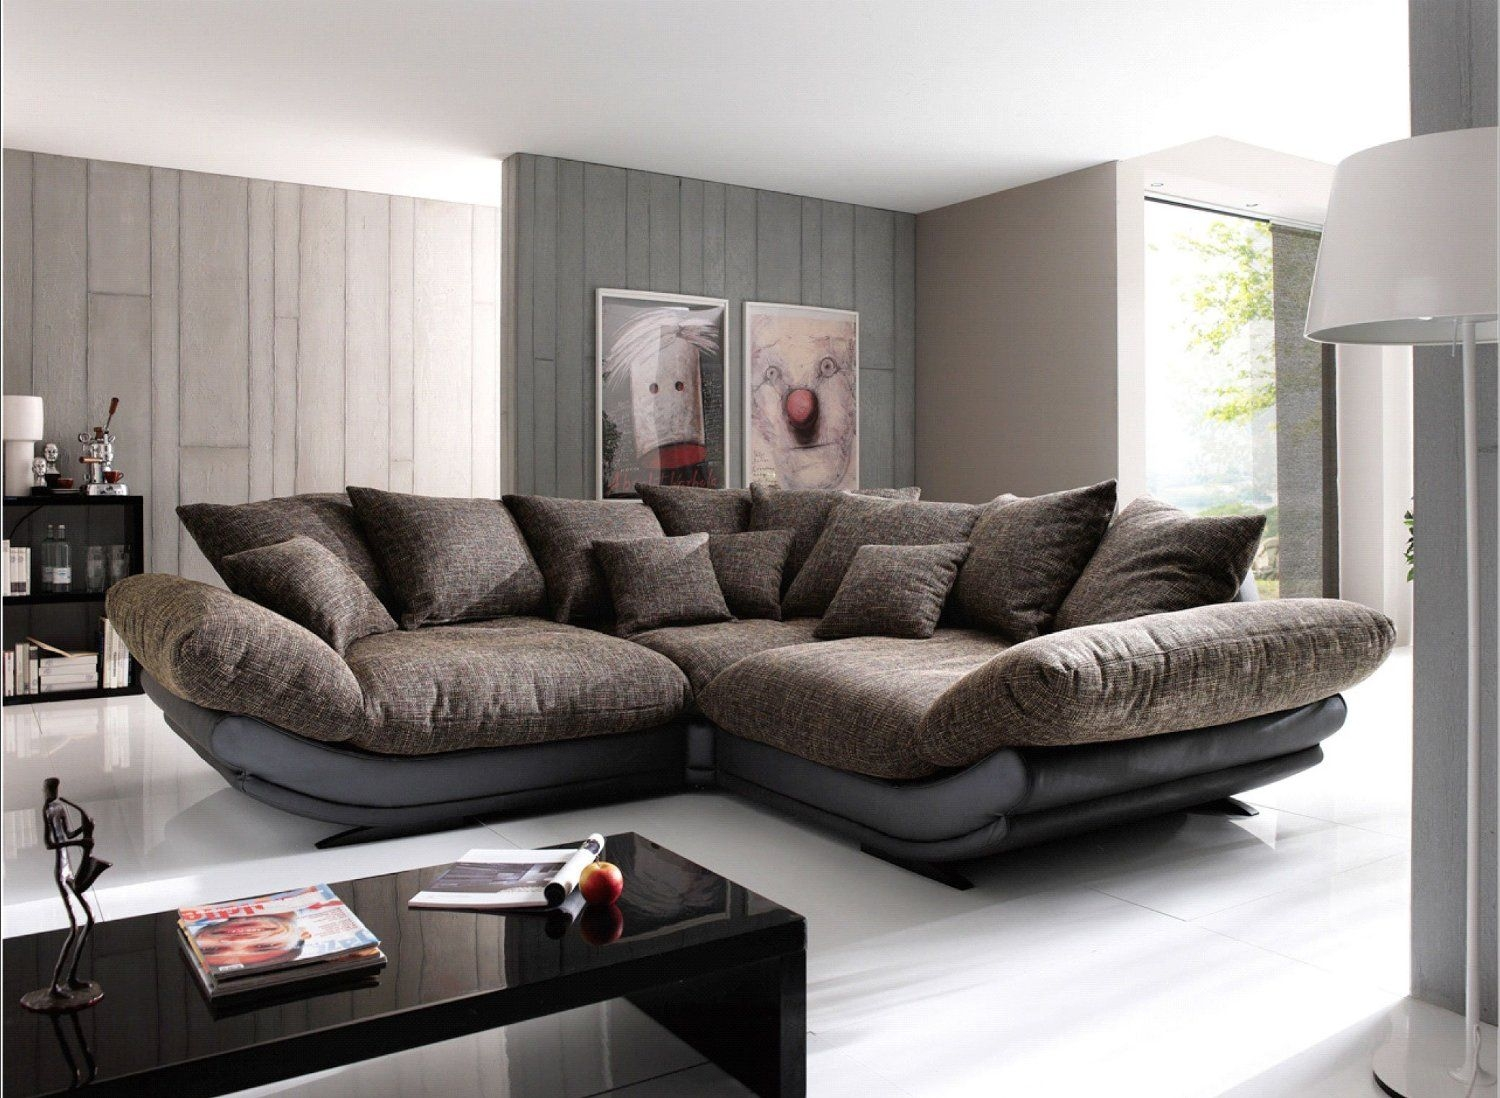 Exceptional Wonderful Extra Large Sectional Sofa U2014 Home Design .